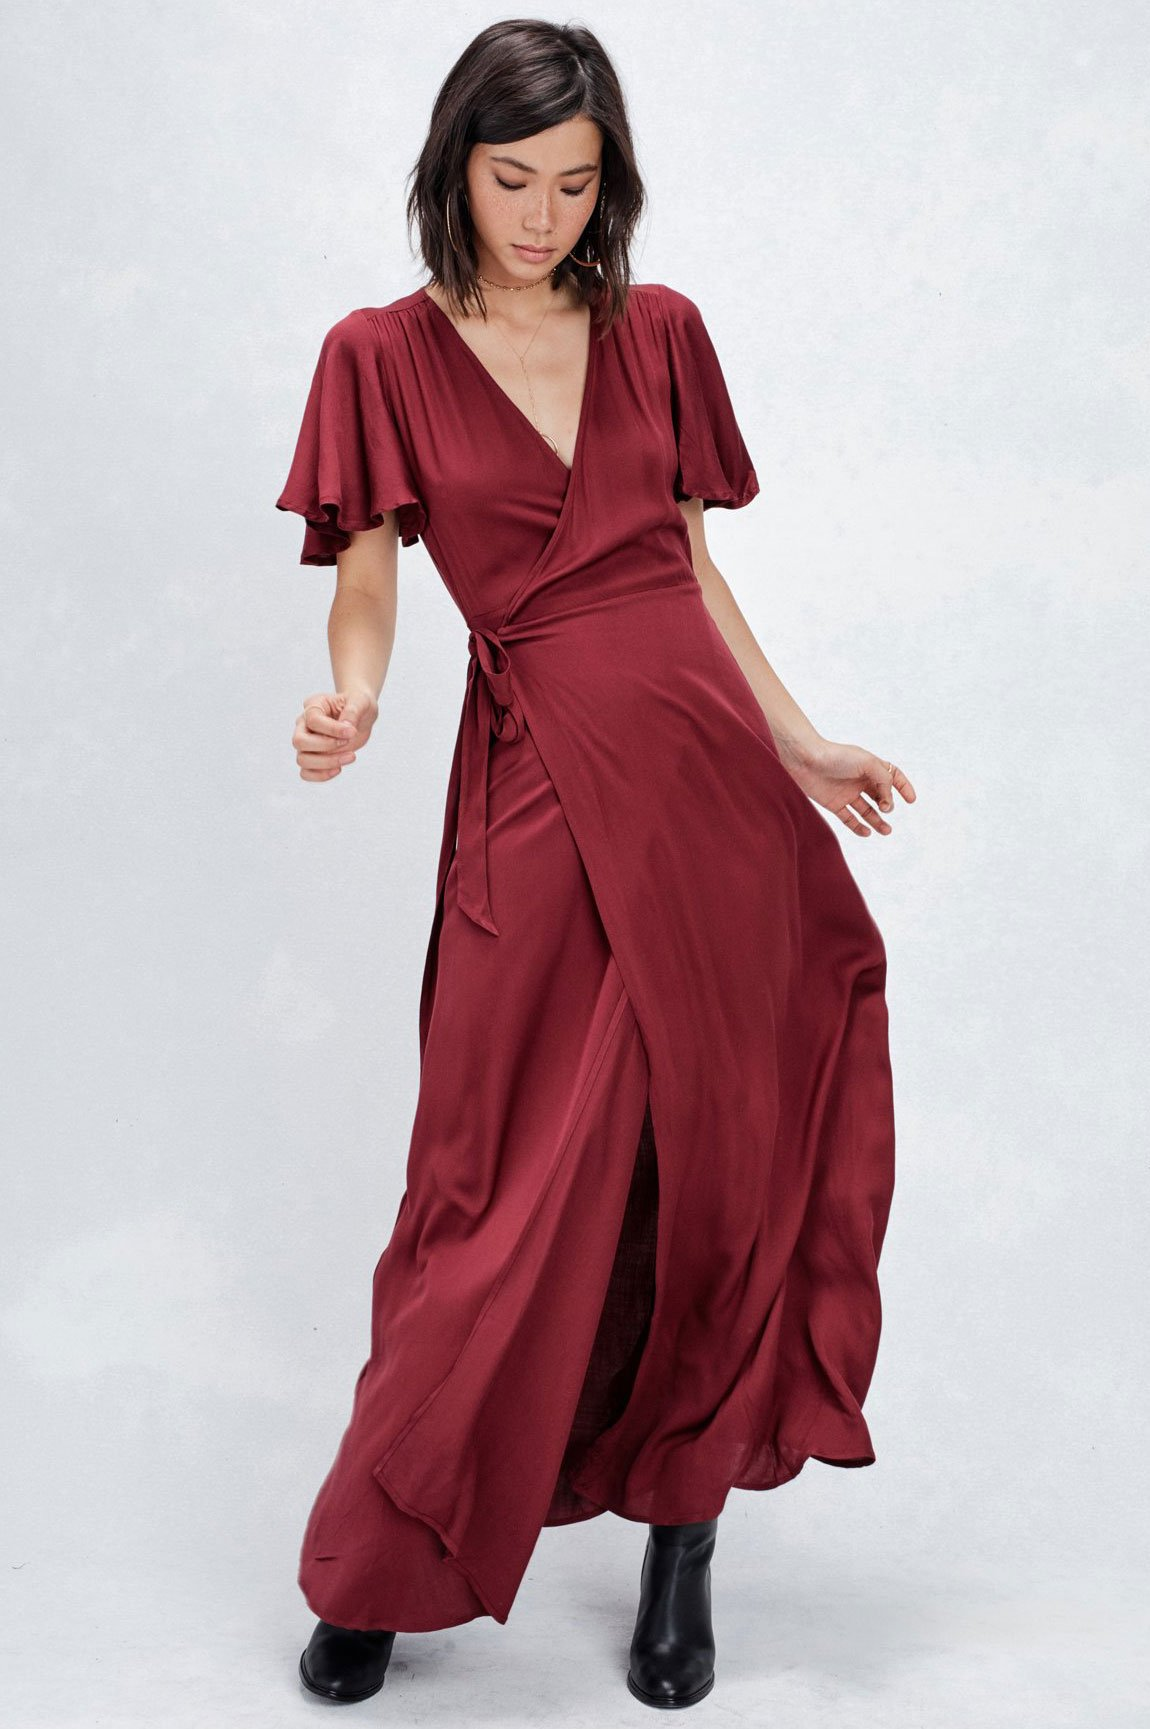 Long sleeve wrap maxi dresses for women